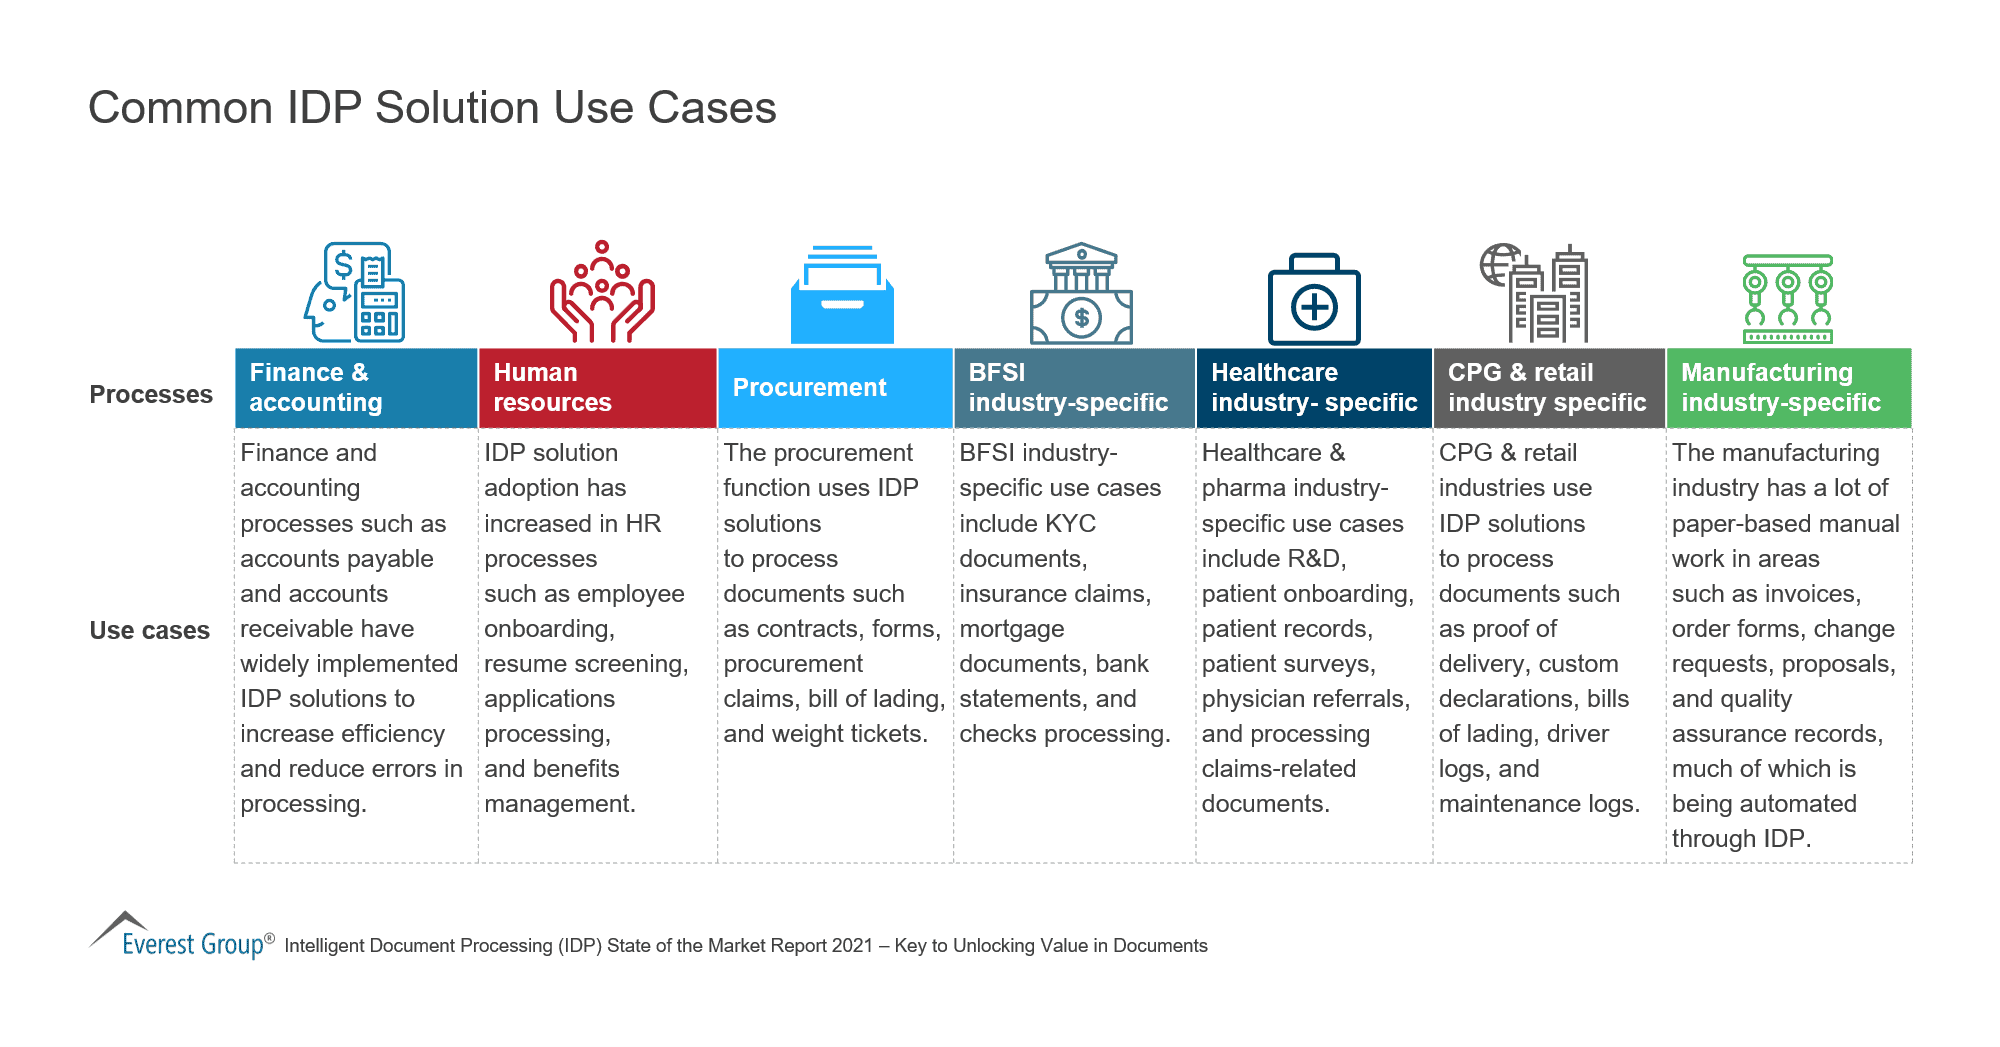 Common IDP Solution Use Cases